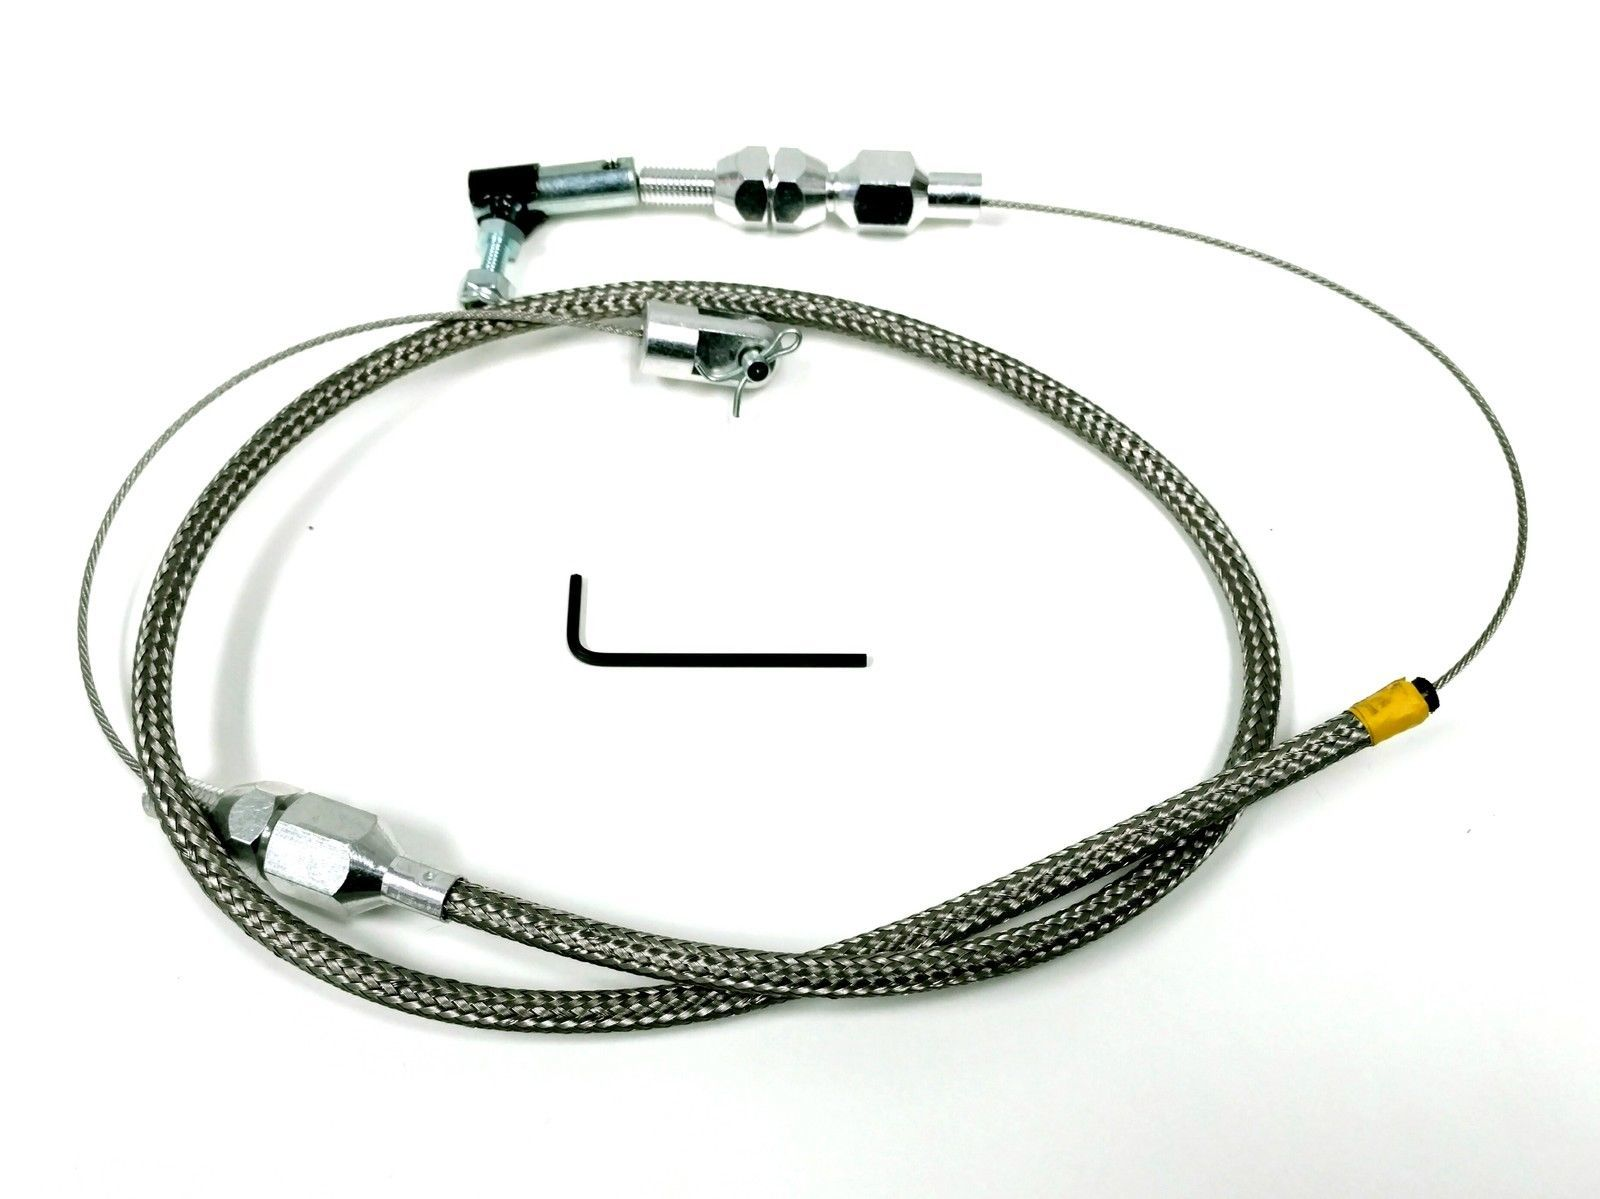 Hot Rod Cable : Quot stainless throttle cable w braid for